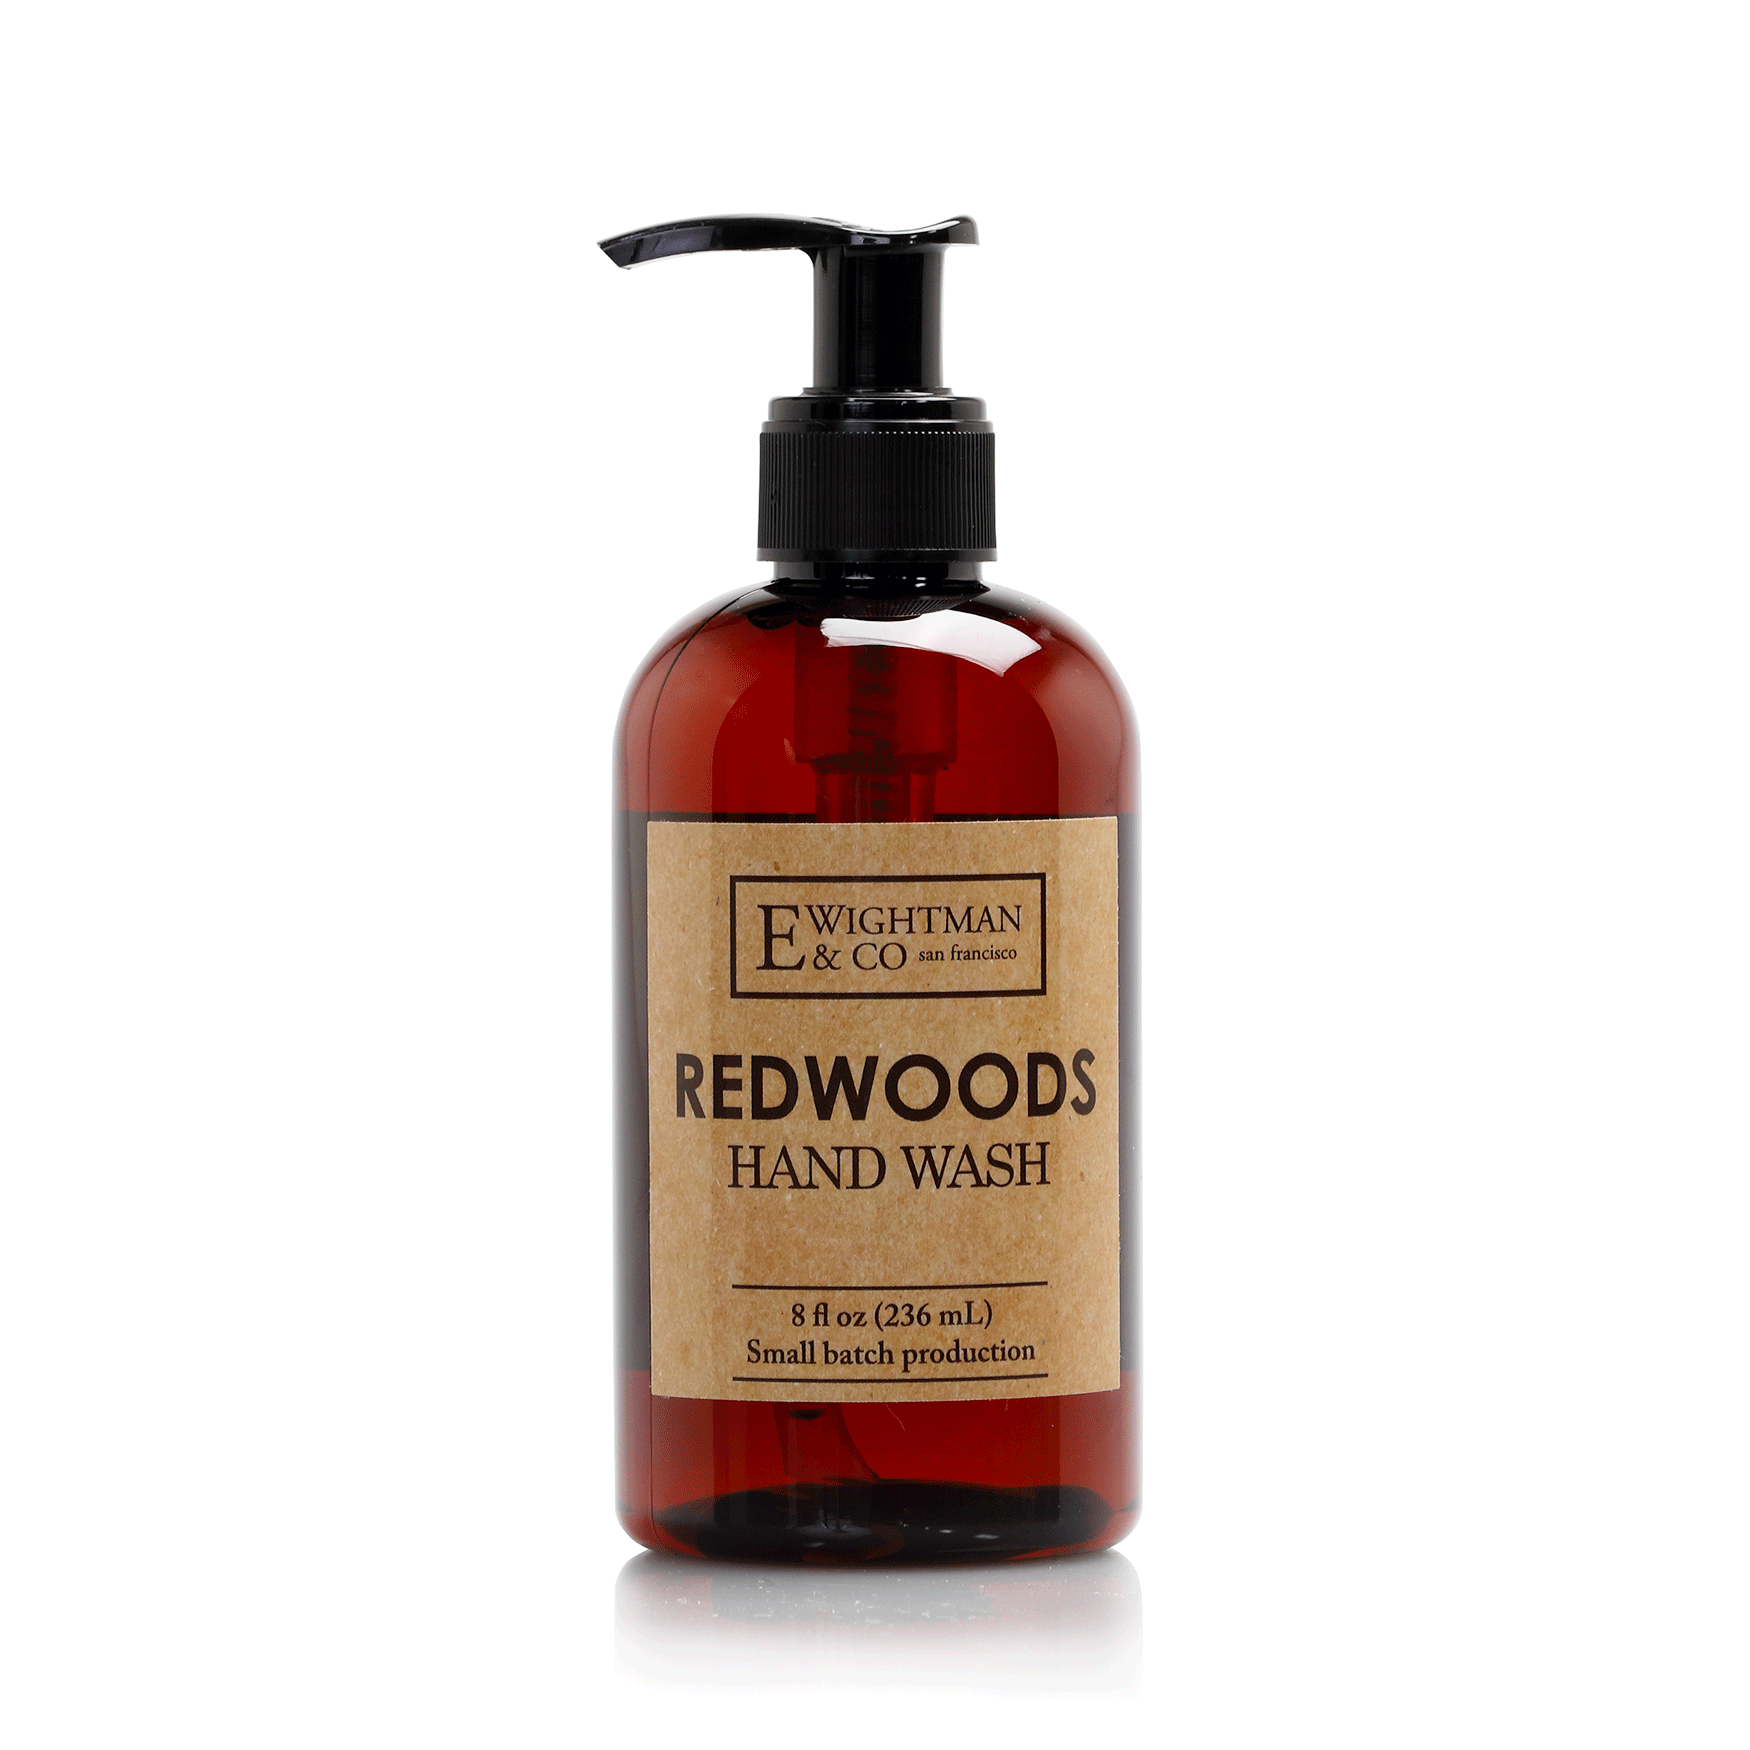 Redwoods Hand Wash